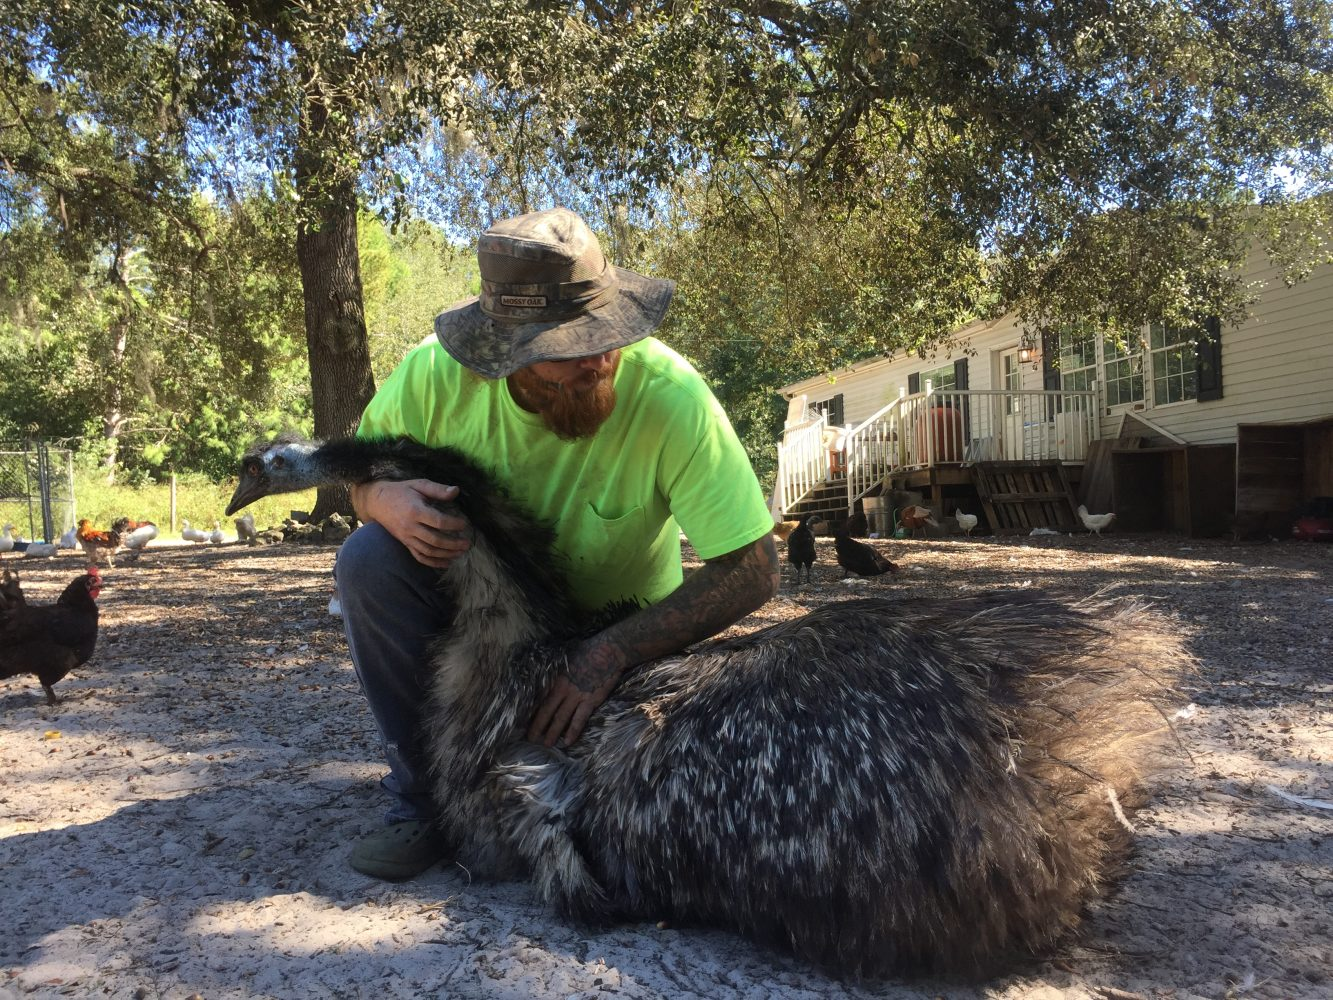 Rathaypets one of his emus, Baby Girl, Saturday. Rathay's farm is a licensed hatchery and sells emu and other eggs. (Sara Girard/WUFT)